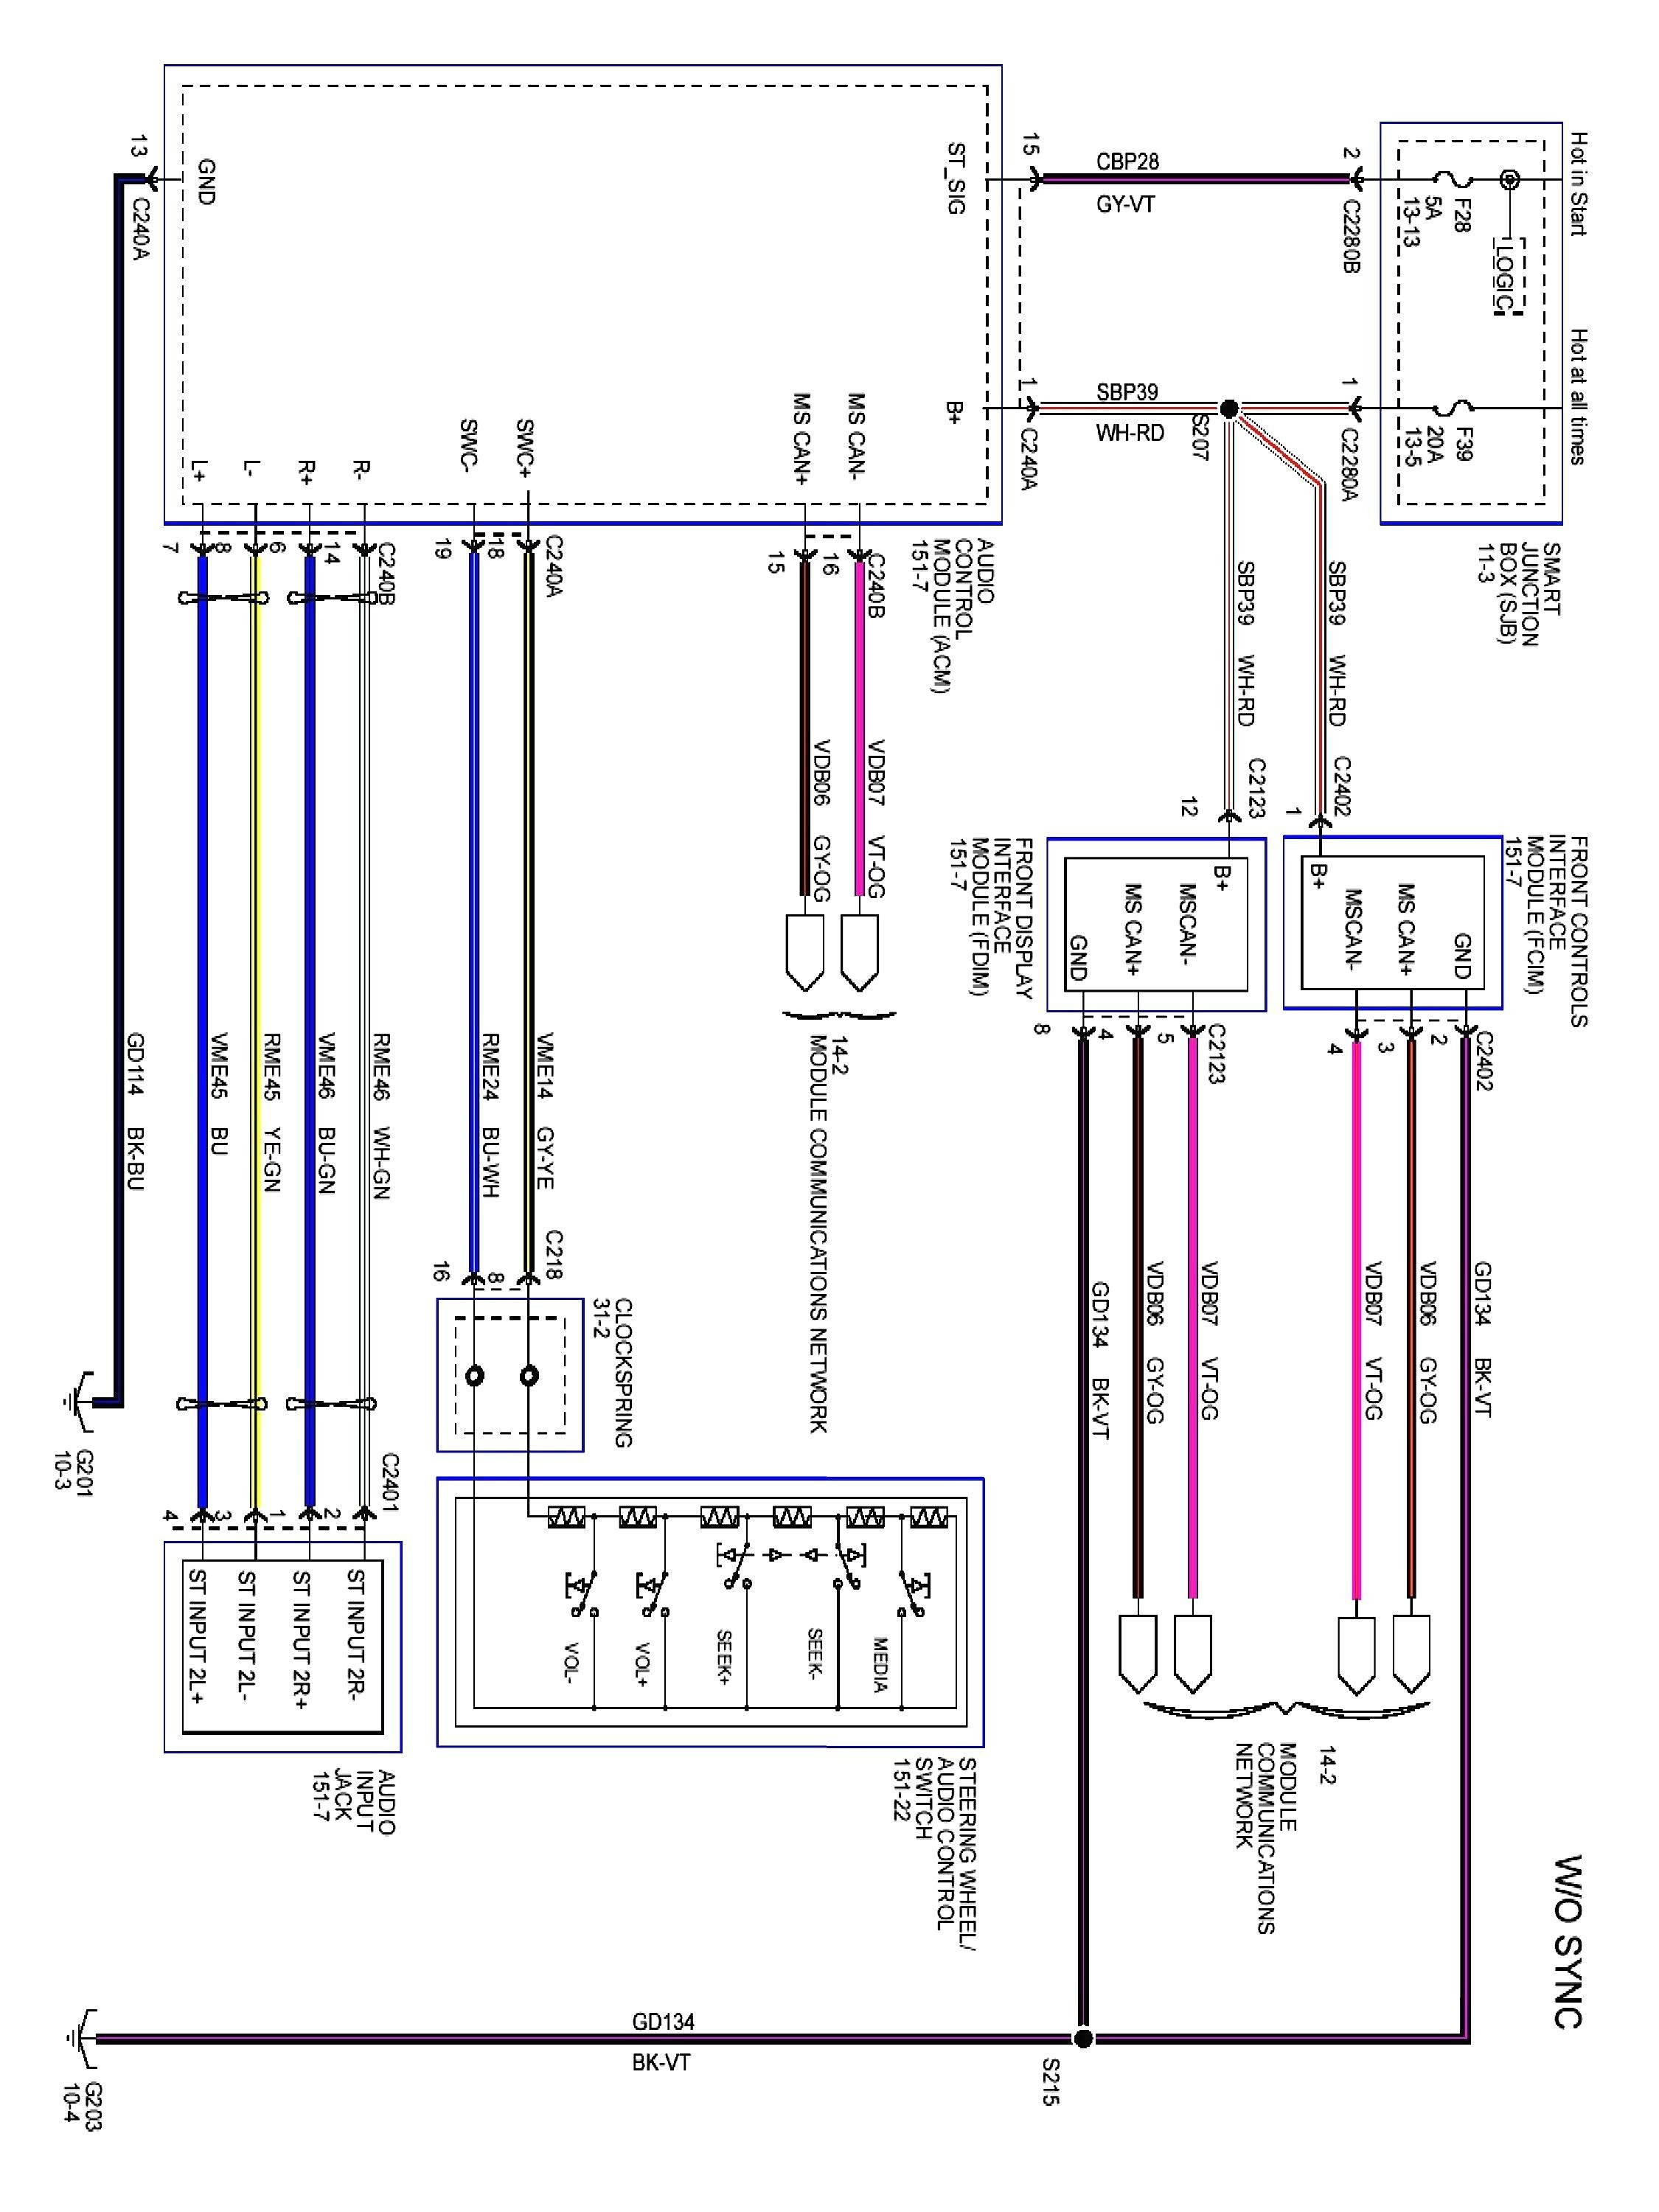 Wiring Harness Of Maine : Bmw wiring diagram image